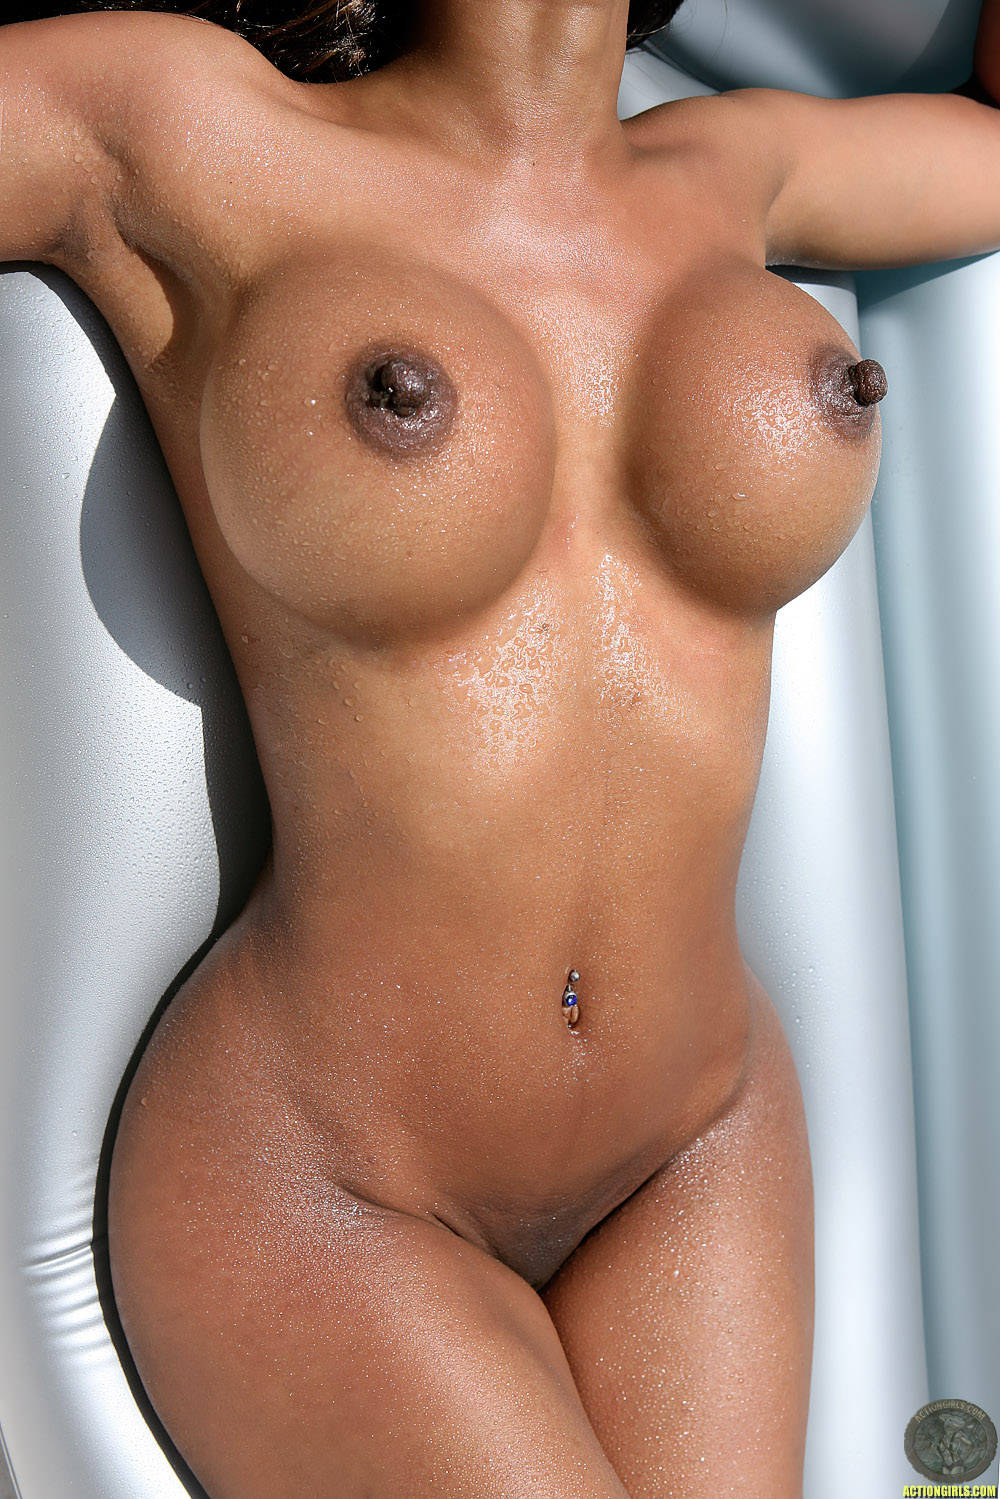 Nude female with large areola